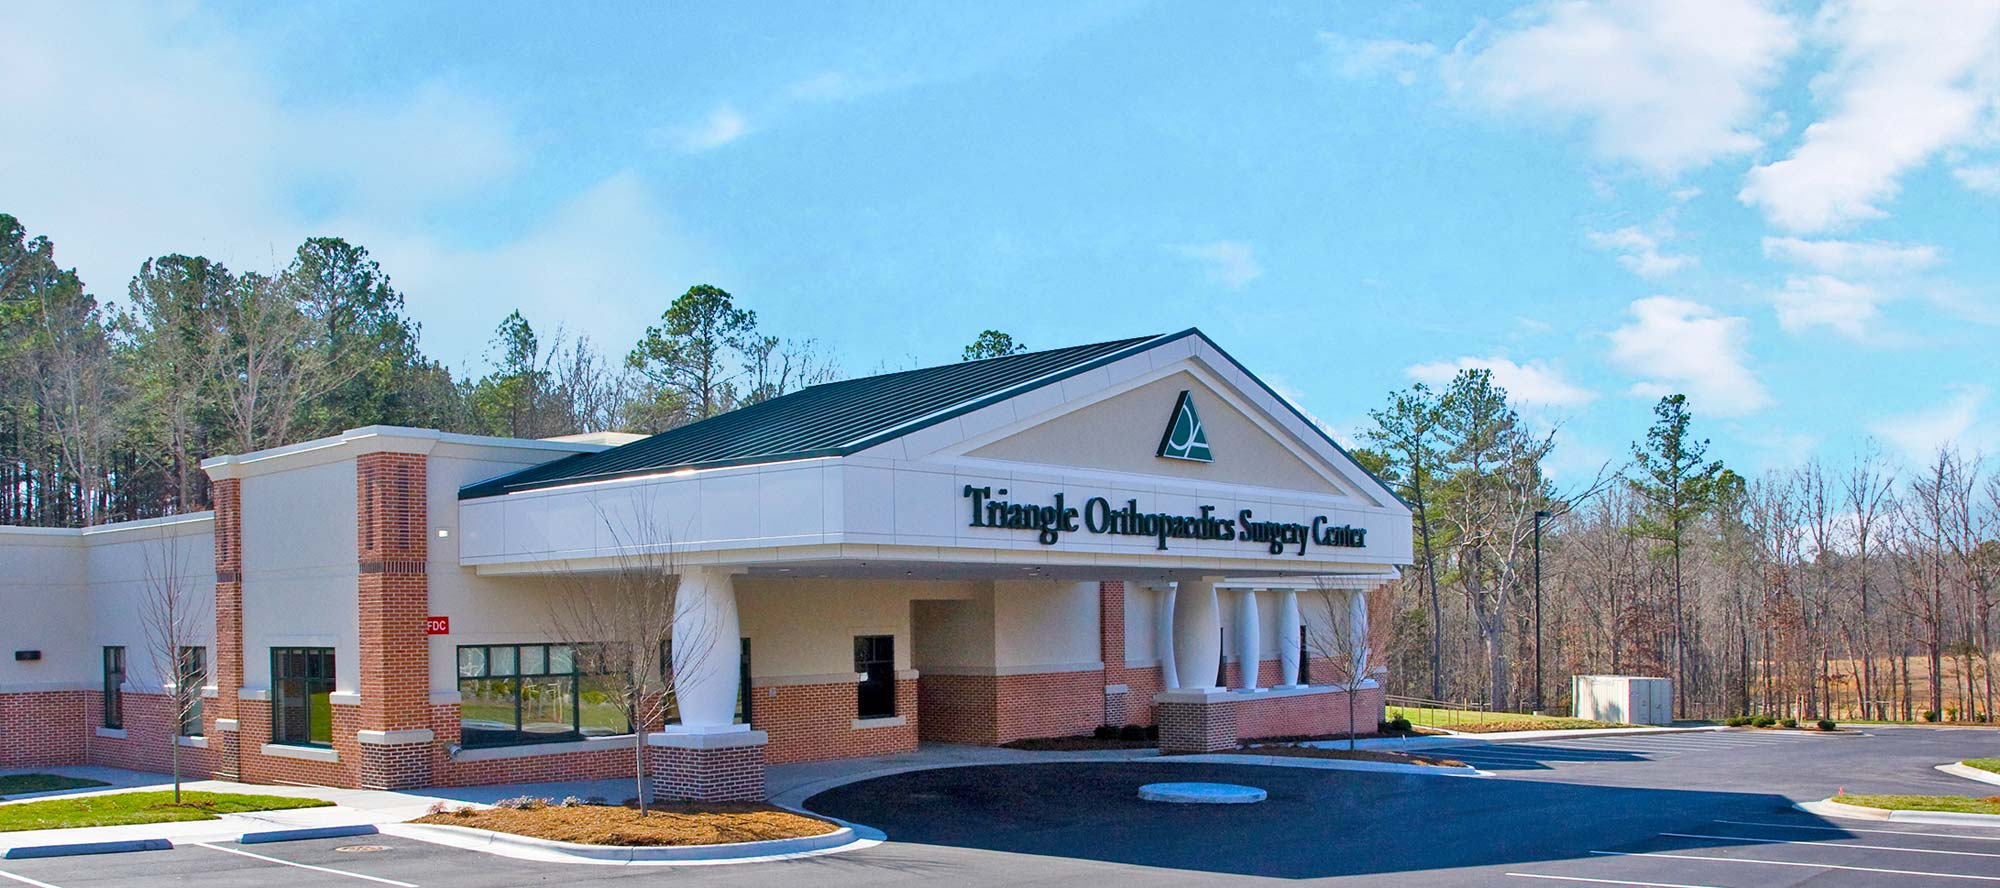 Triangle Orthopaedics Surgery Center, LLC (TOSC)